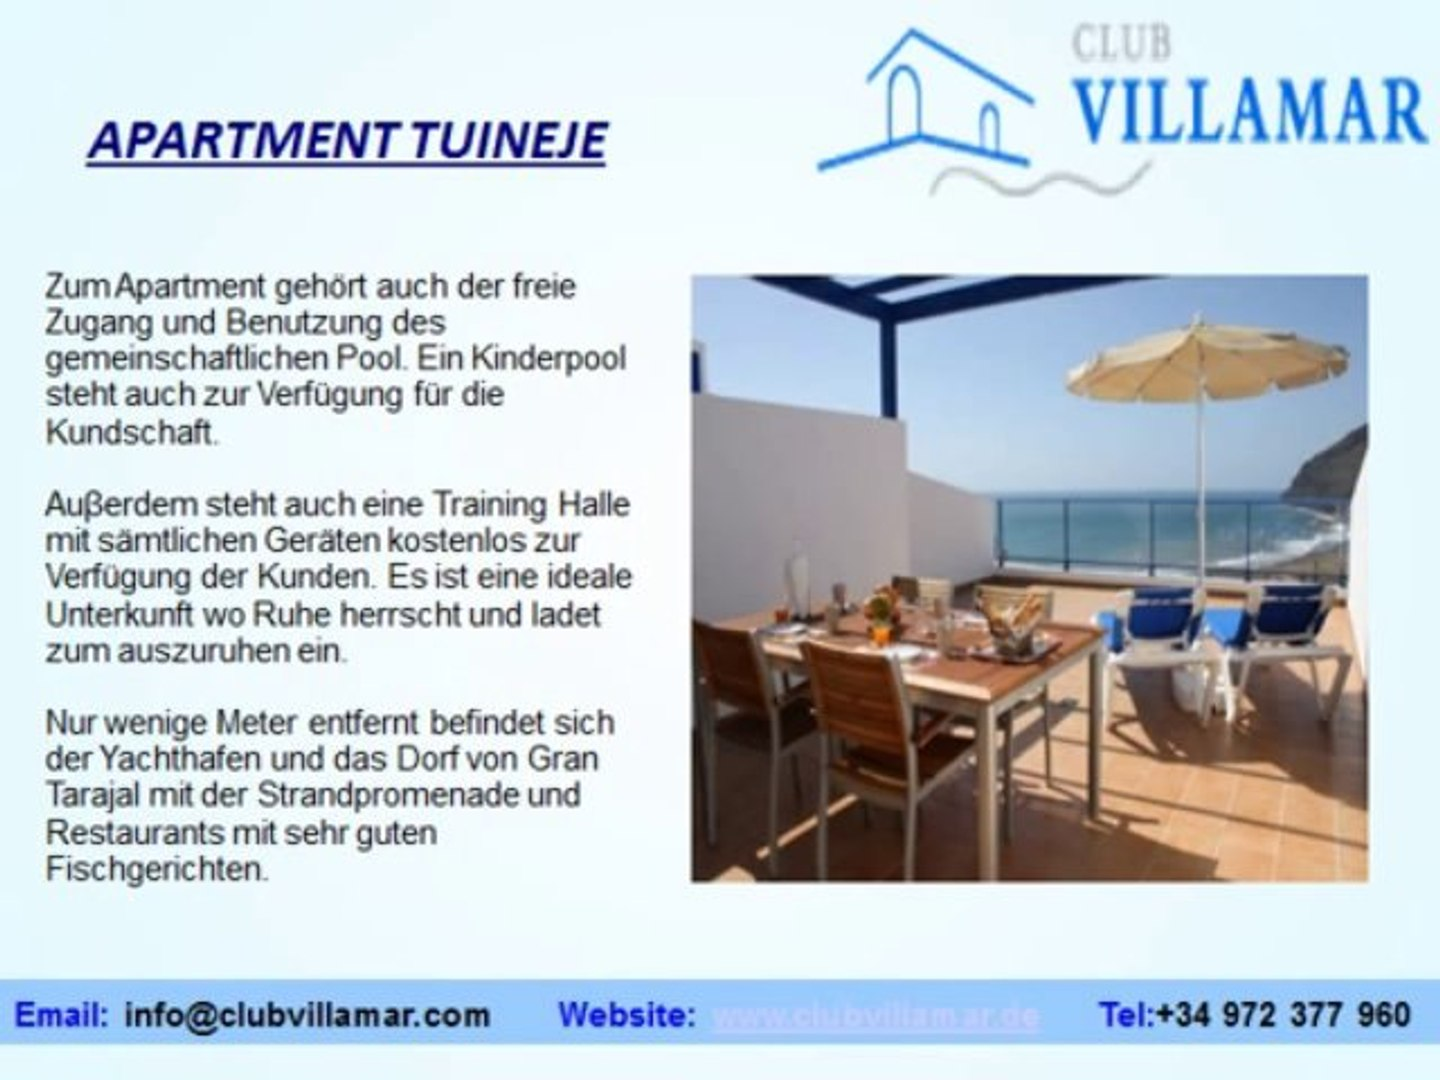 Club Villamar - Bosta Spanish villas for rent